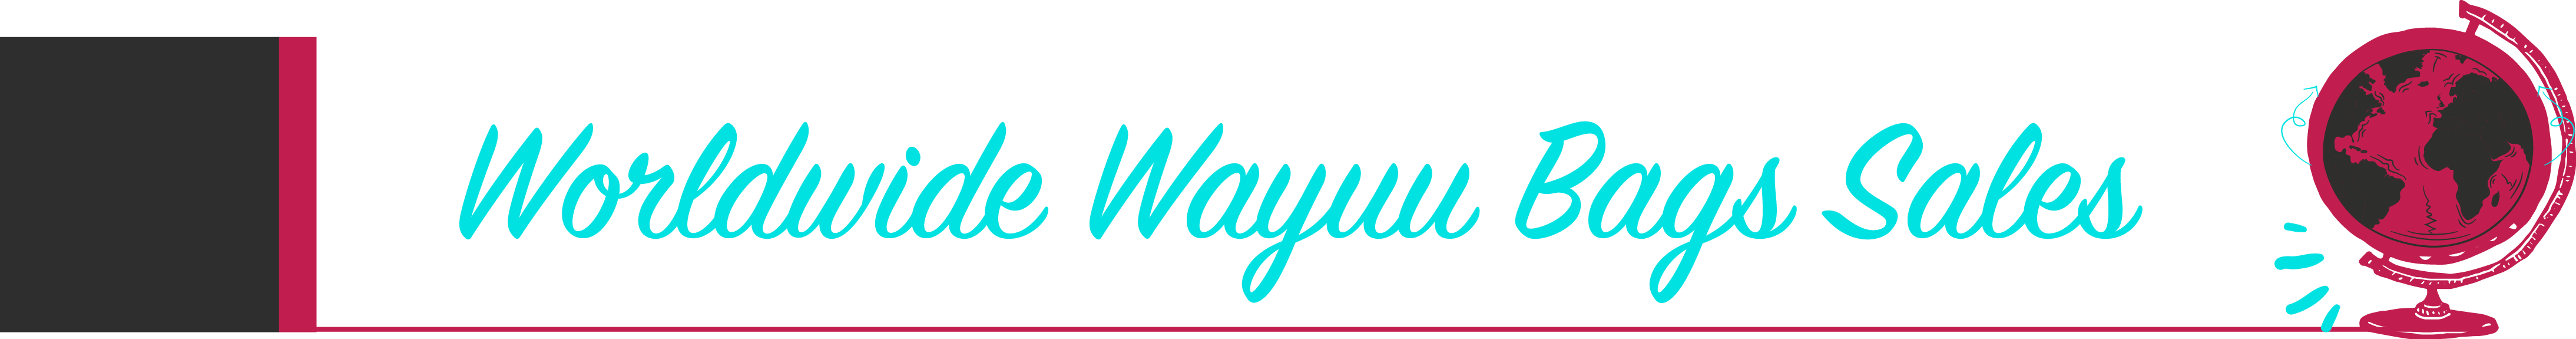 Worldwide Wayuu Bags Sales